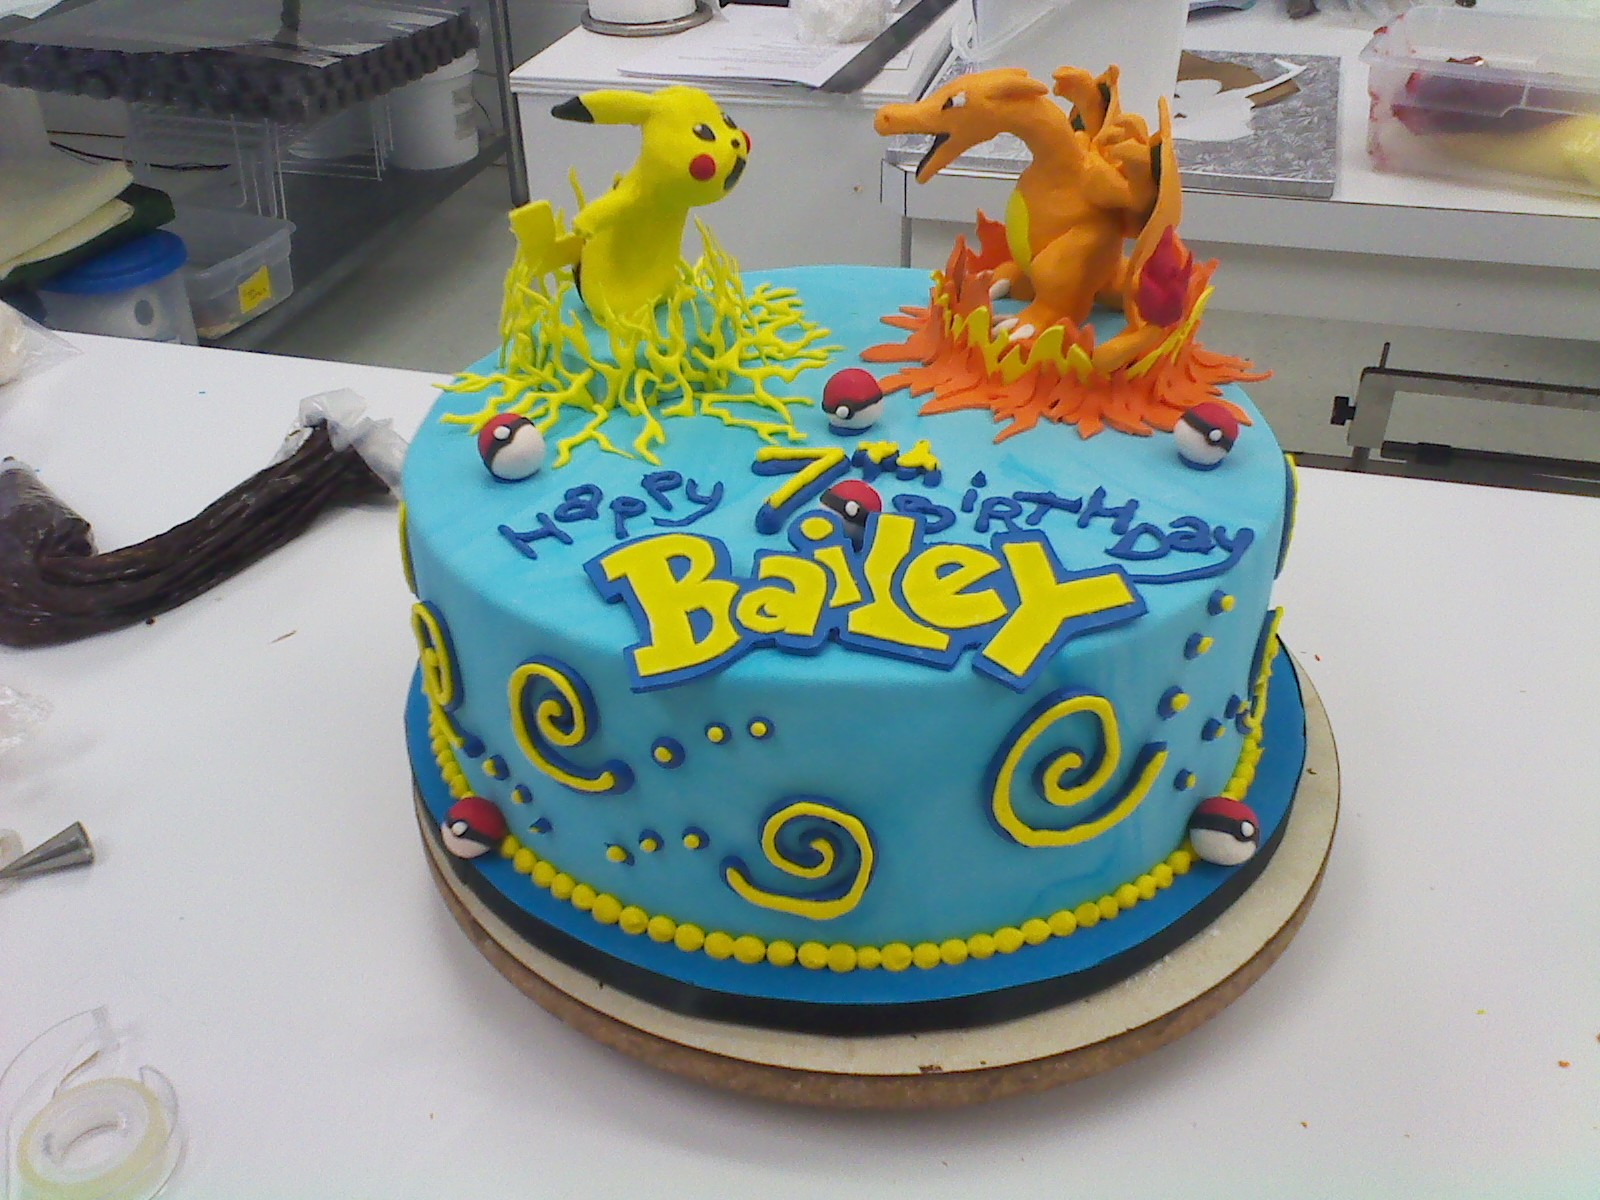 I Was Overjoyed To Create A Little Pikachu And Charizard Out Of Modeling Chocolate For Baileys 7th Birthday He Loved The Cake